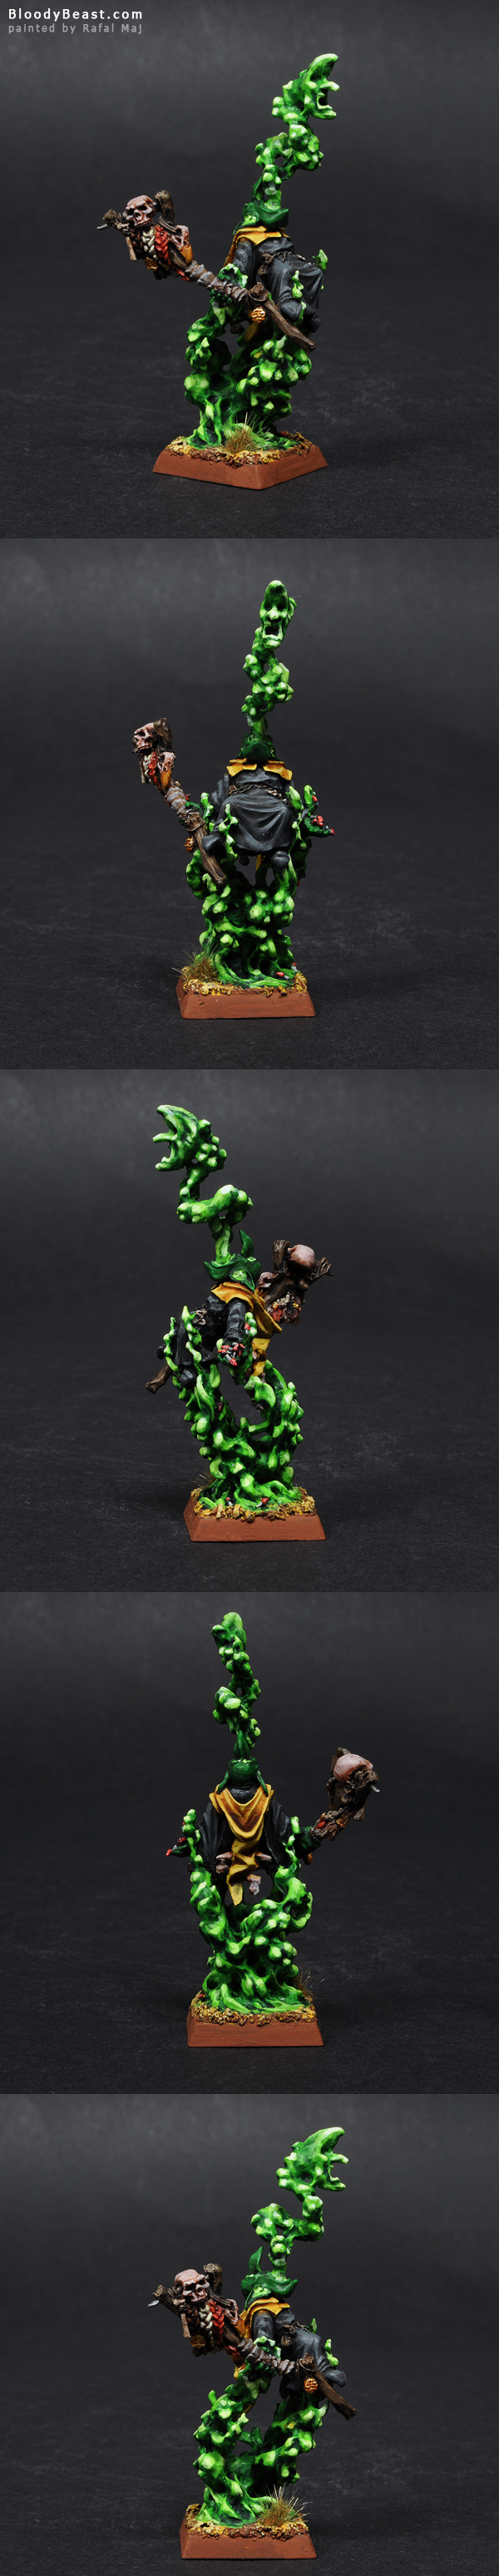 Night Goblin Shaman painted by Rafal Maj (BloodyBeast.com)